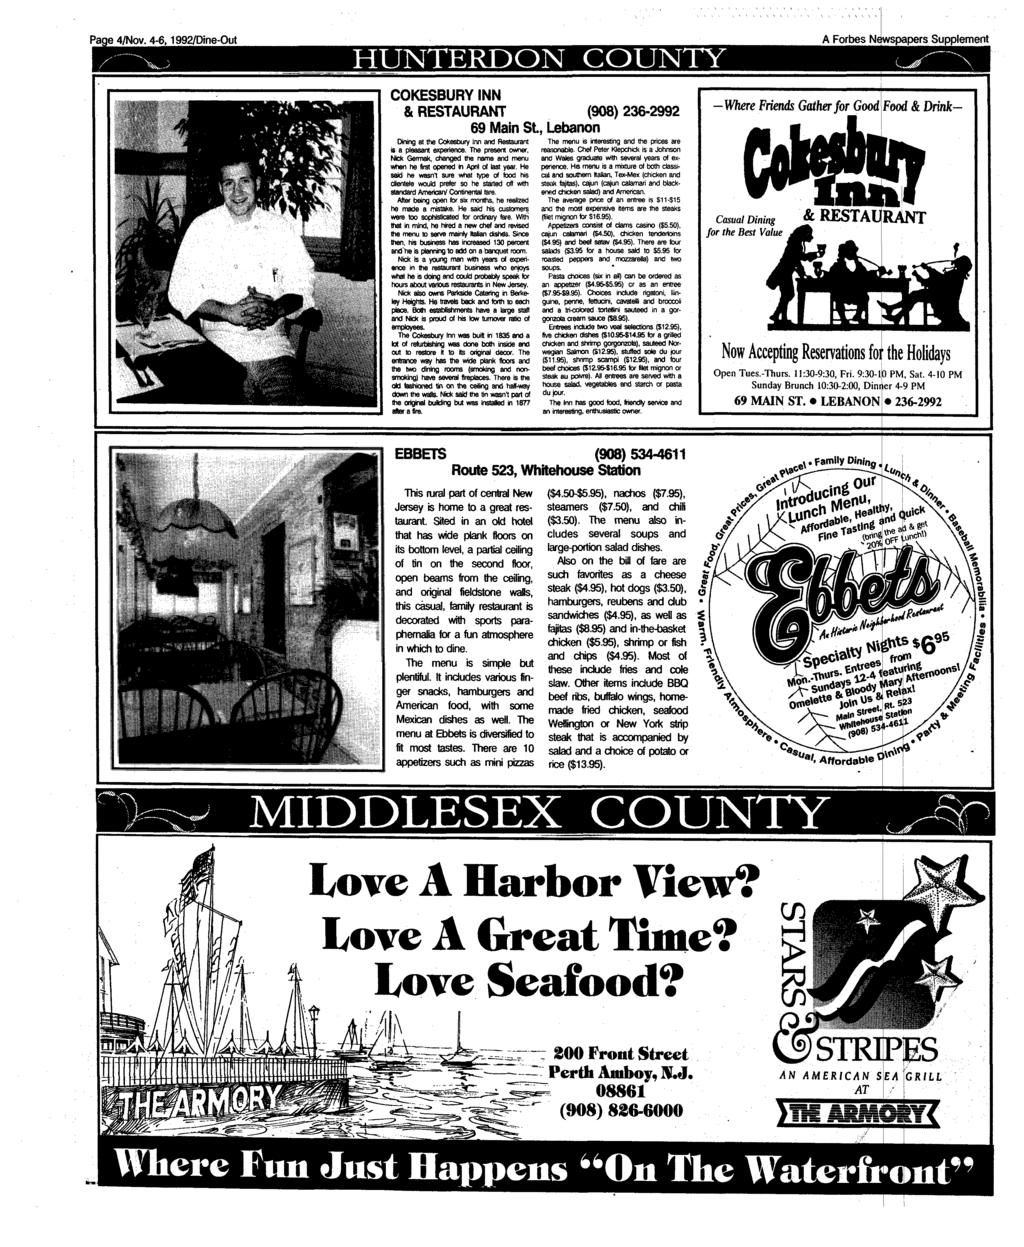 "Page 4/Nov. 4-6,1992/Dine-Out HUNTERDON COUNTY A Forbes Newspapers Supplement j g p, J / :^; :: 5 """"'-/mm i COKESBURY INN & RESTAURANT (908) 236-2992 69 Main St."